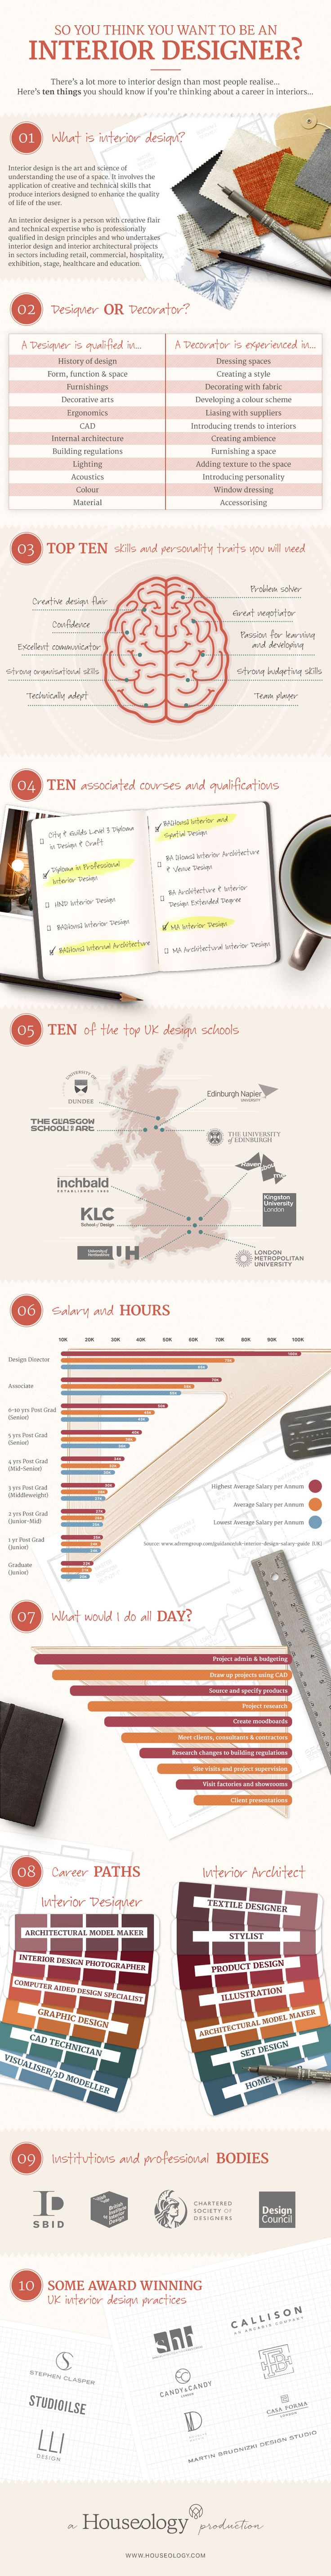 So You Think Want To Be An Interior Designer Infographic Design CareerInterior